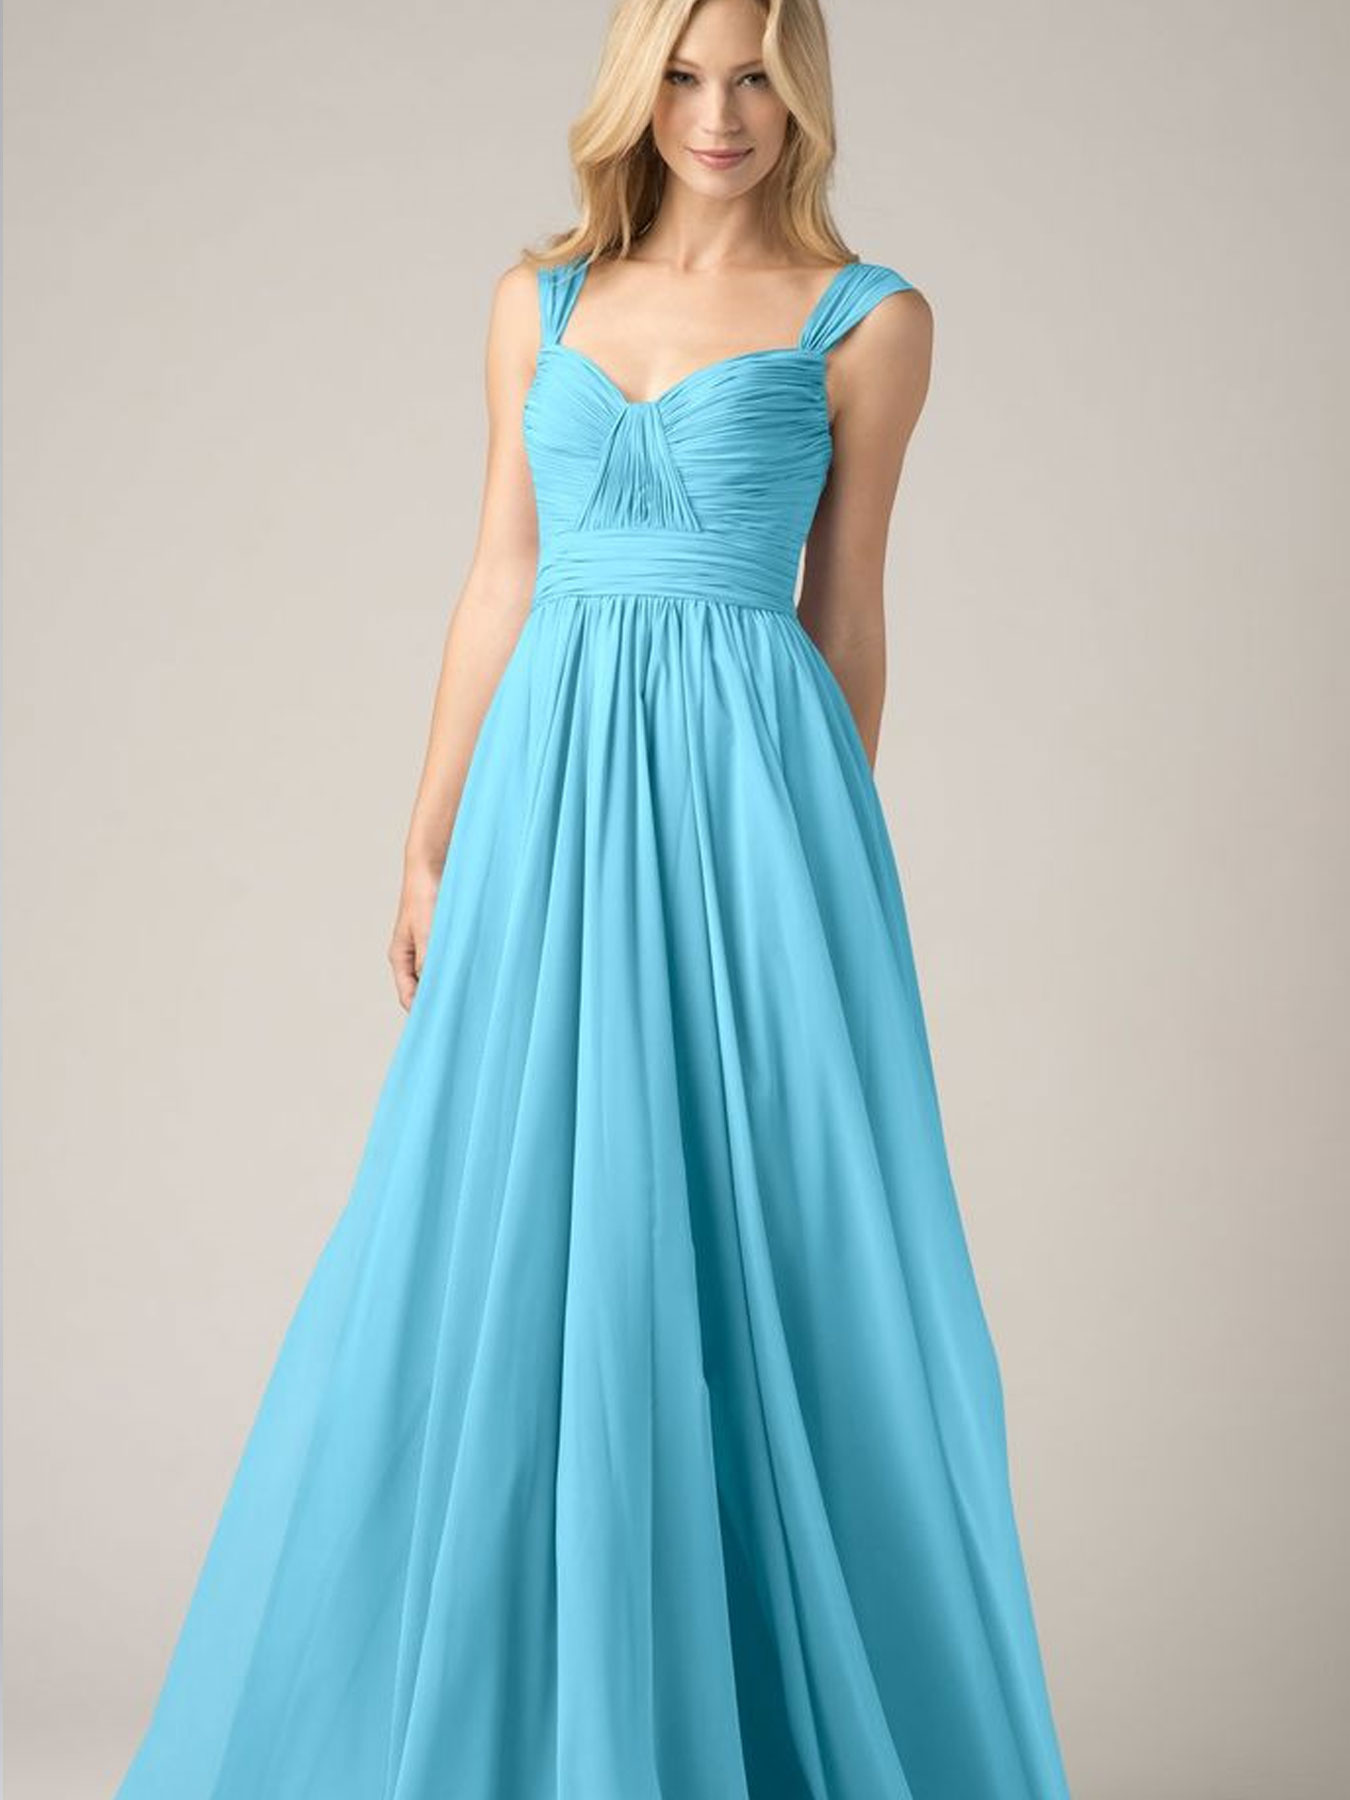 image result for wedding gowns buffalo ny